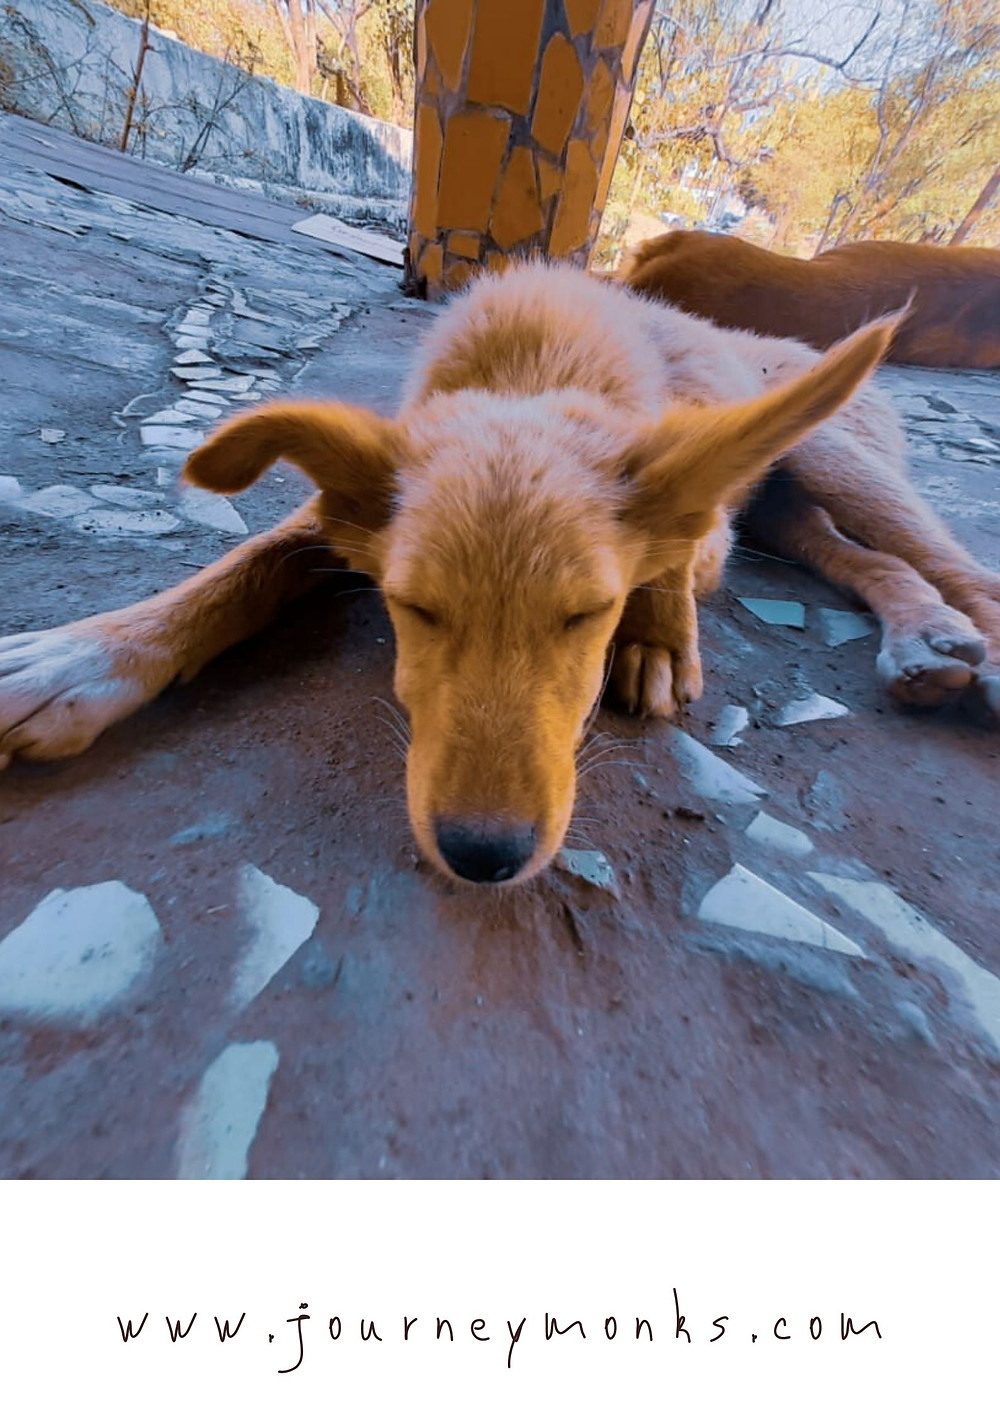 Cute Animal wallpaper,cute animals,dog,cute dog,sleeping dog,dog picture,wallpaper for mobile,pc wallpaper,dog wallpaper.